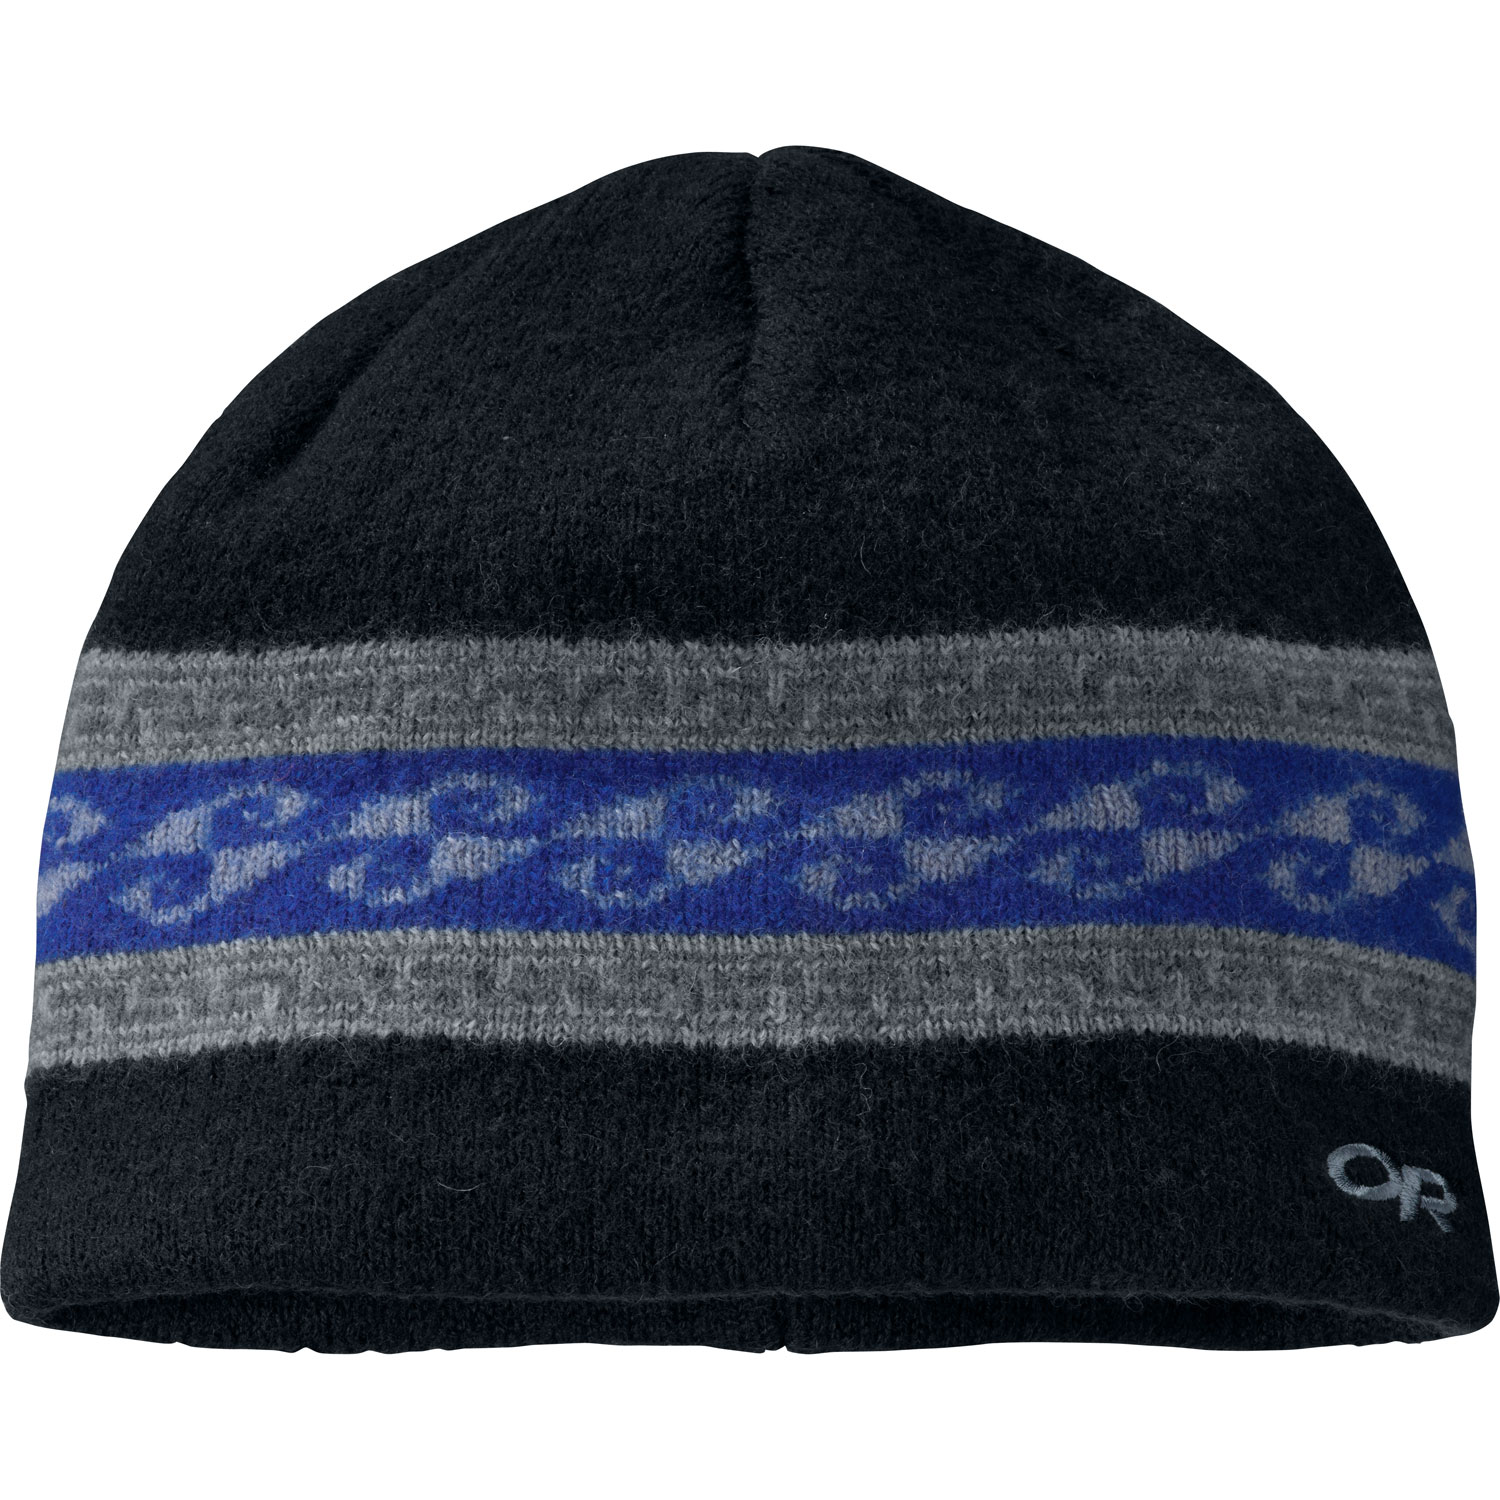 Key Features of the Outdoor Research Totem Beanie: 100% boiled wool Fleece-lined ear band - $21.95